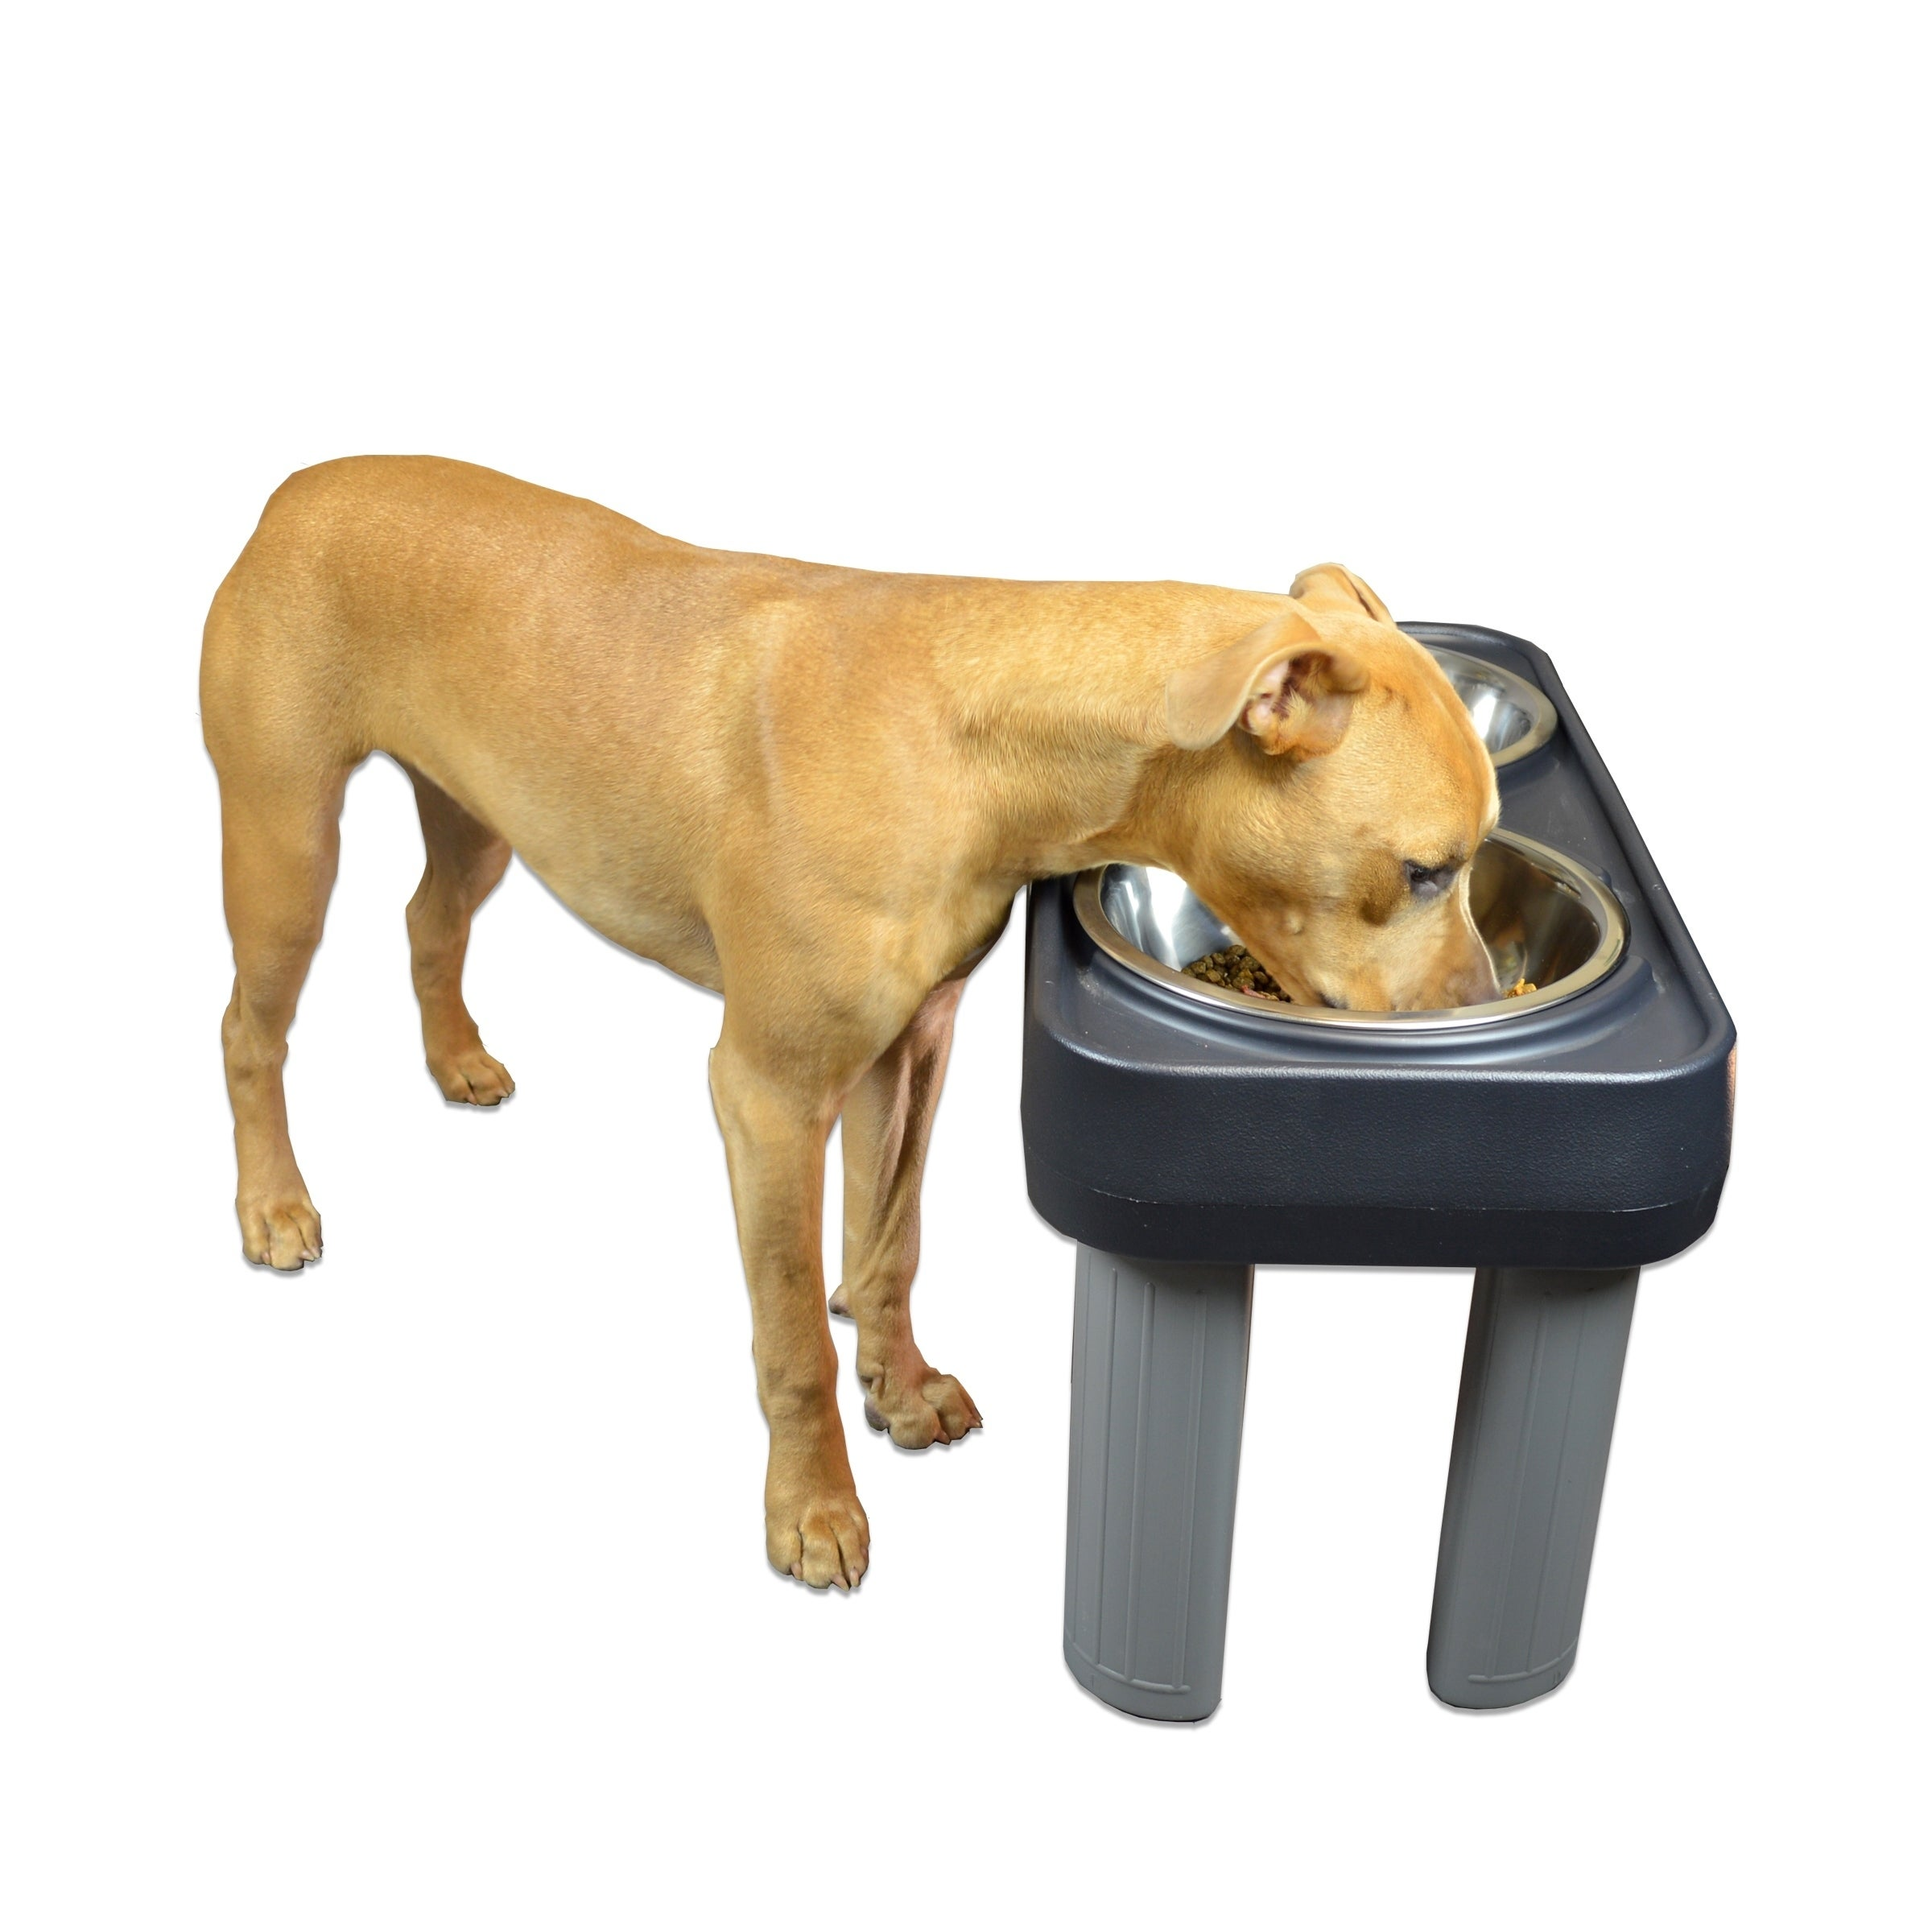 feeder orange slow hound animates fun pet for outward cora coral supplies dogs bowl dog